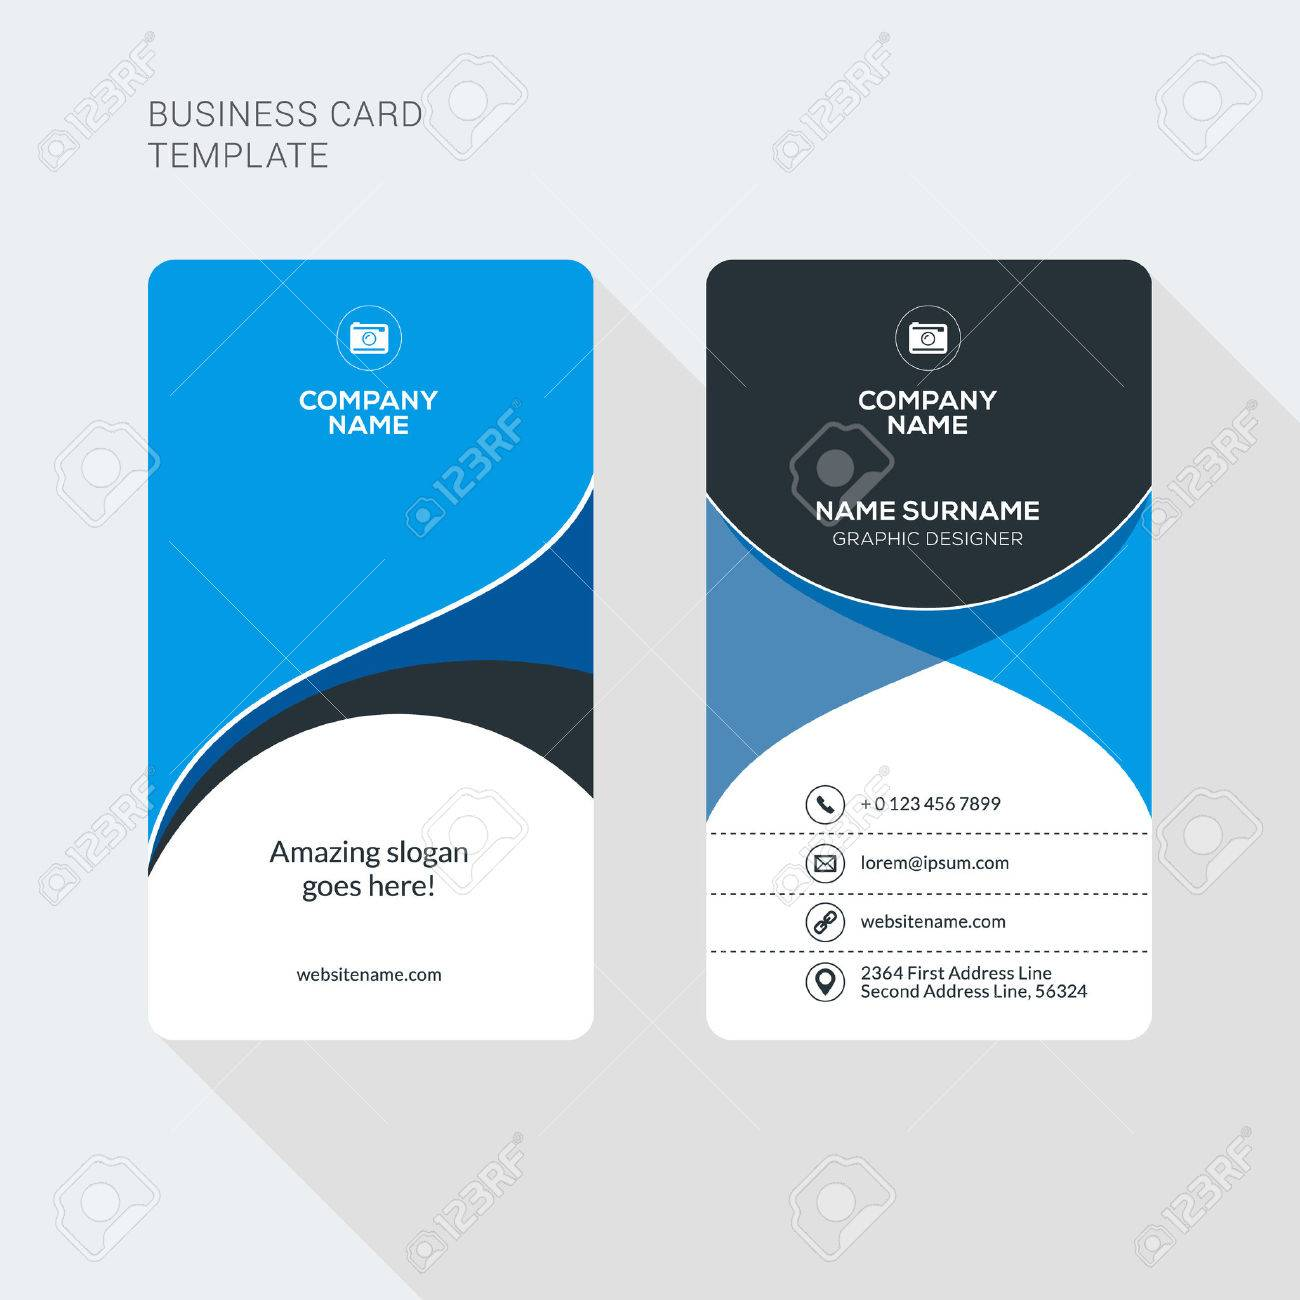 Vertical business card template word zrom horizontal business card template word free vertical yun56 co accmission